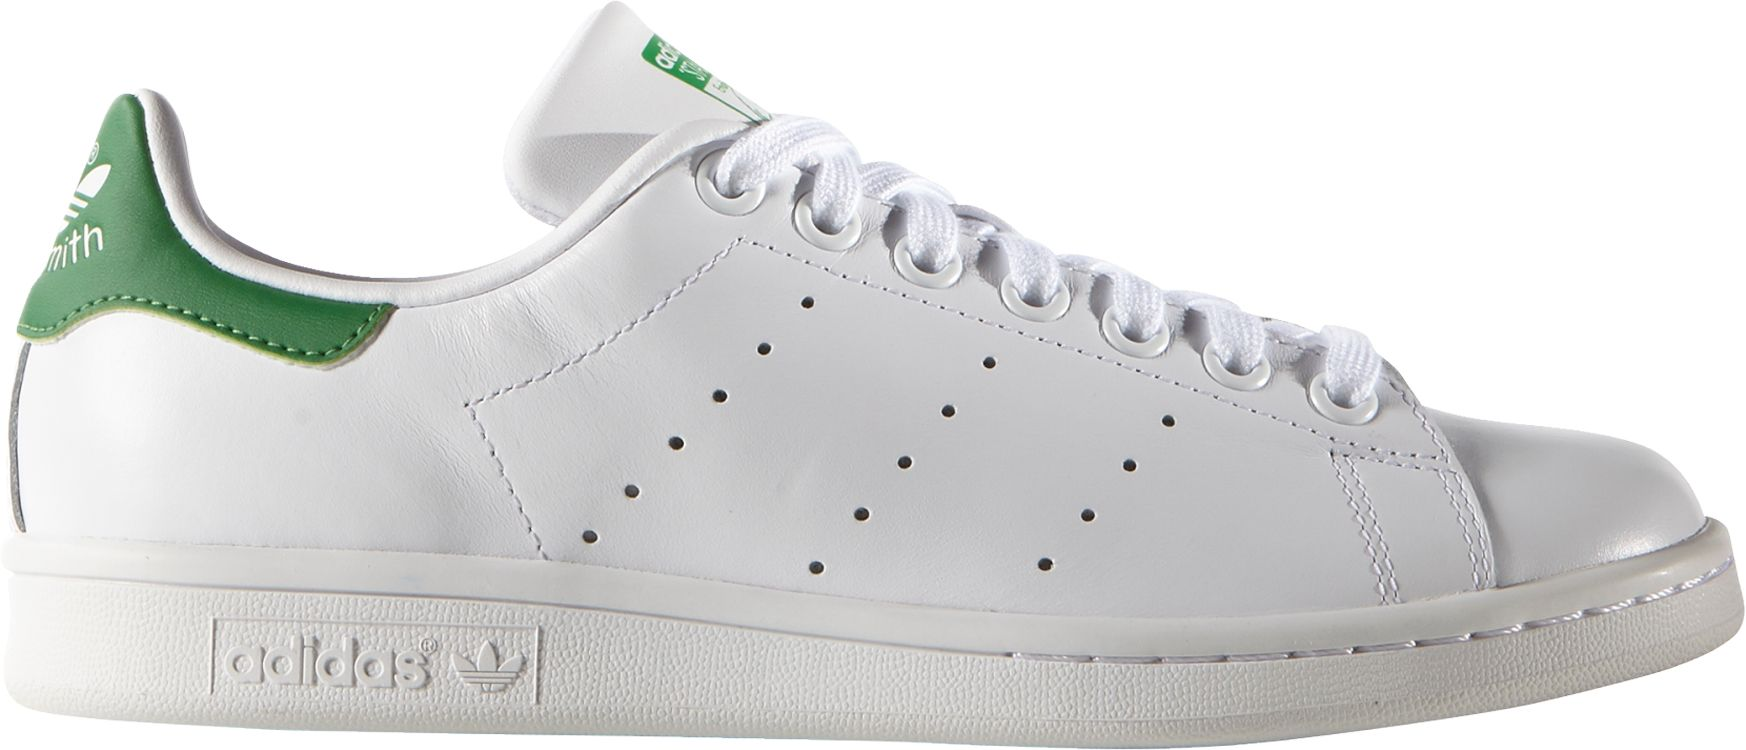 Product Image � adidas Originals Women\u0027s Stan Smith Casual Shoes. White/Green;  White/Navy